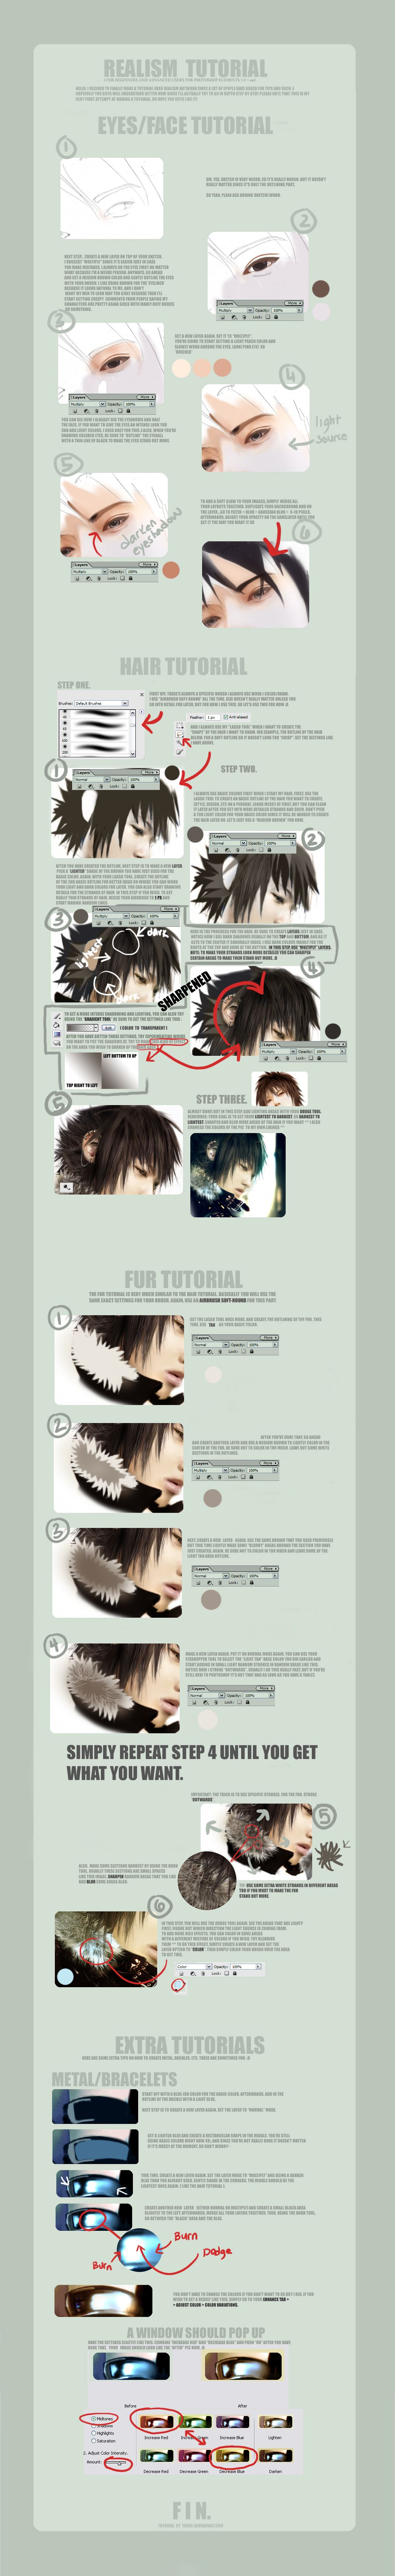 Realism tutorial by yumix on deviantart httpyumixiantart photoshop digital painting tutorial how to create realistic anime portrait realism drawings baditri Image collections